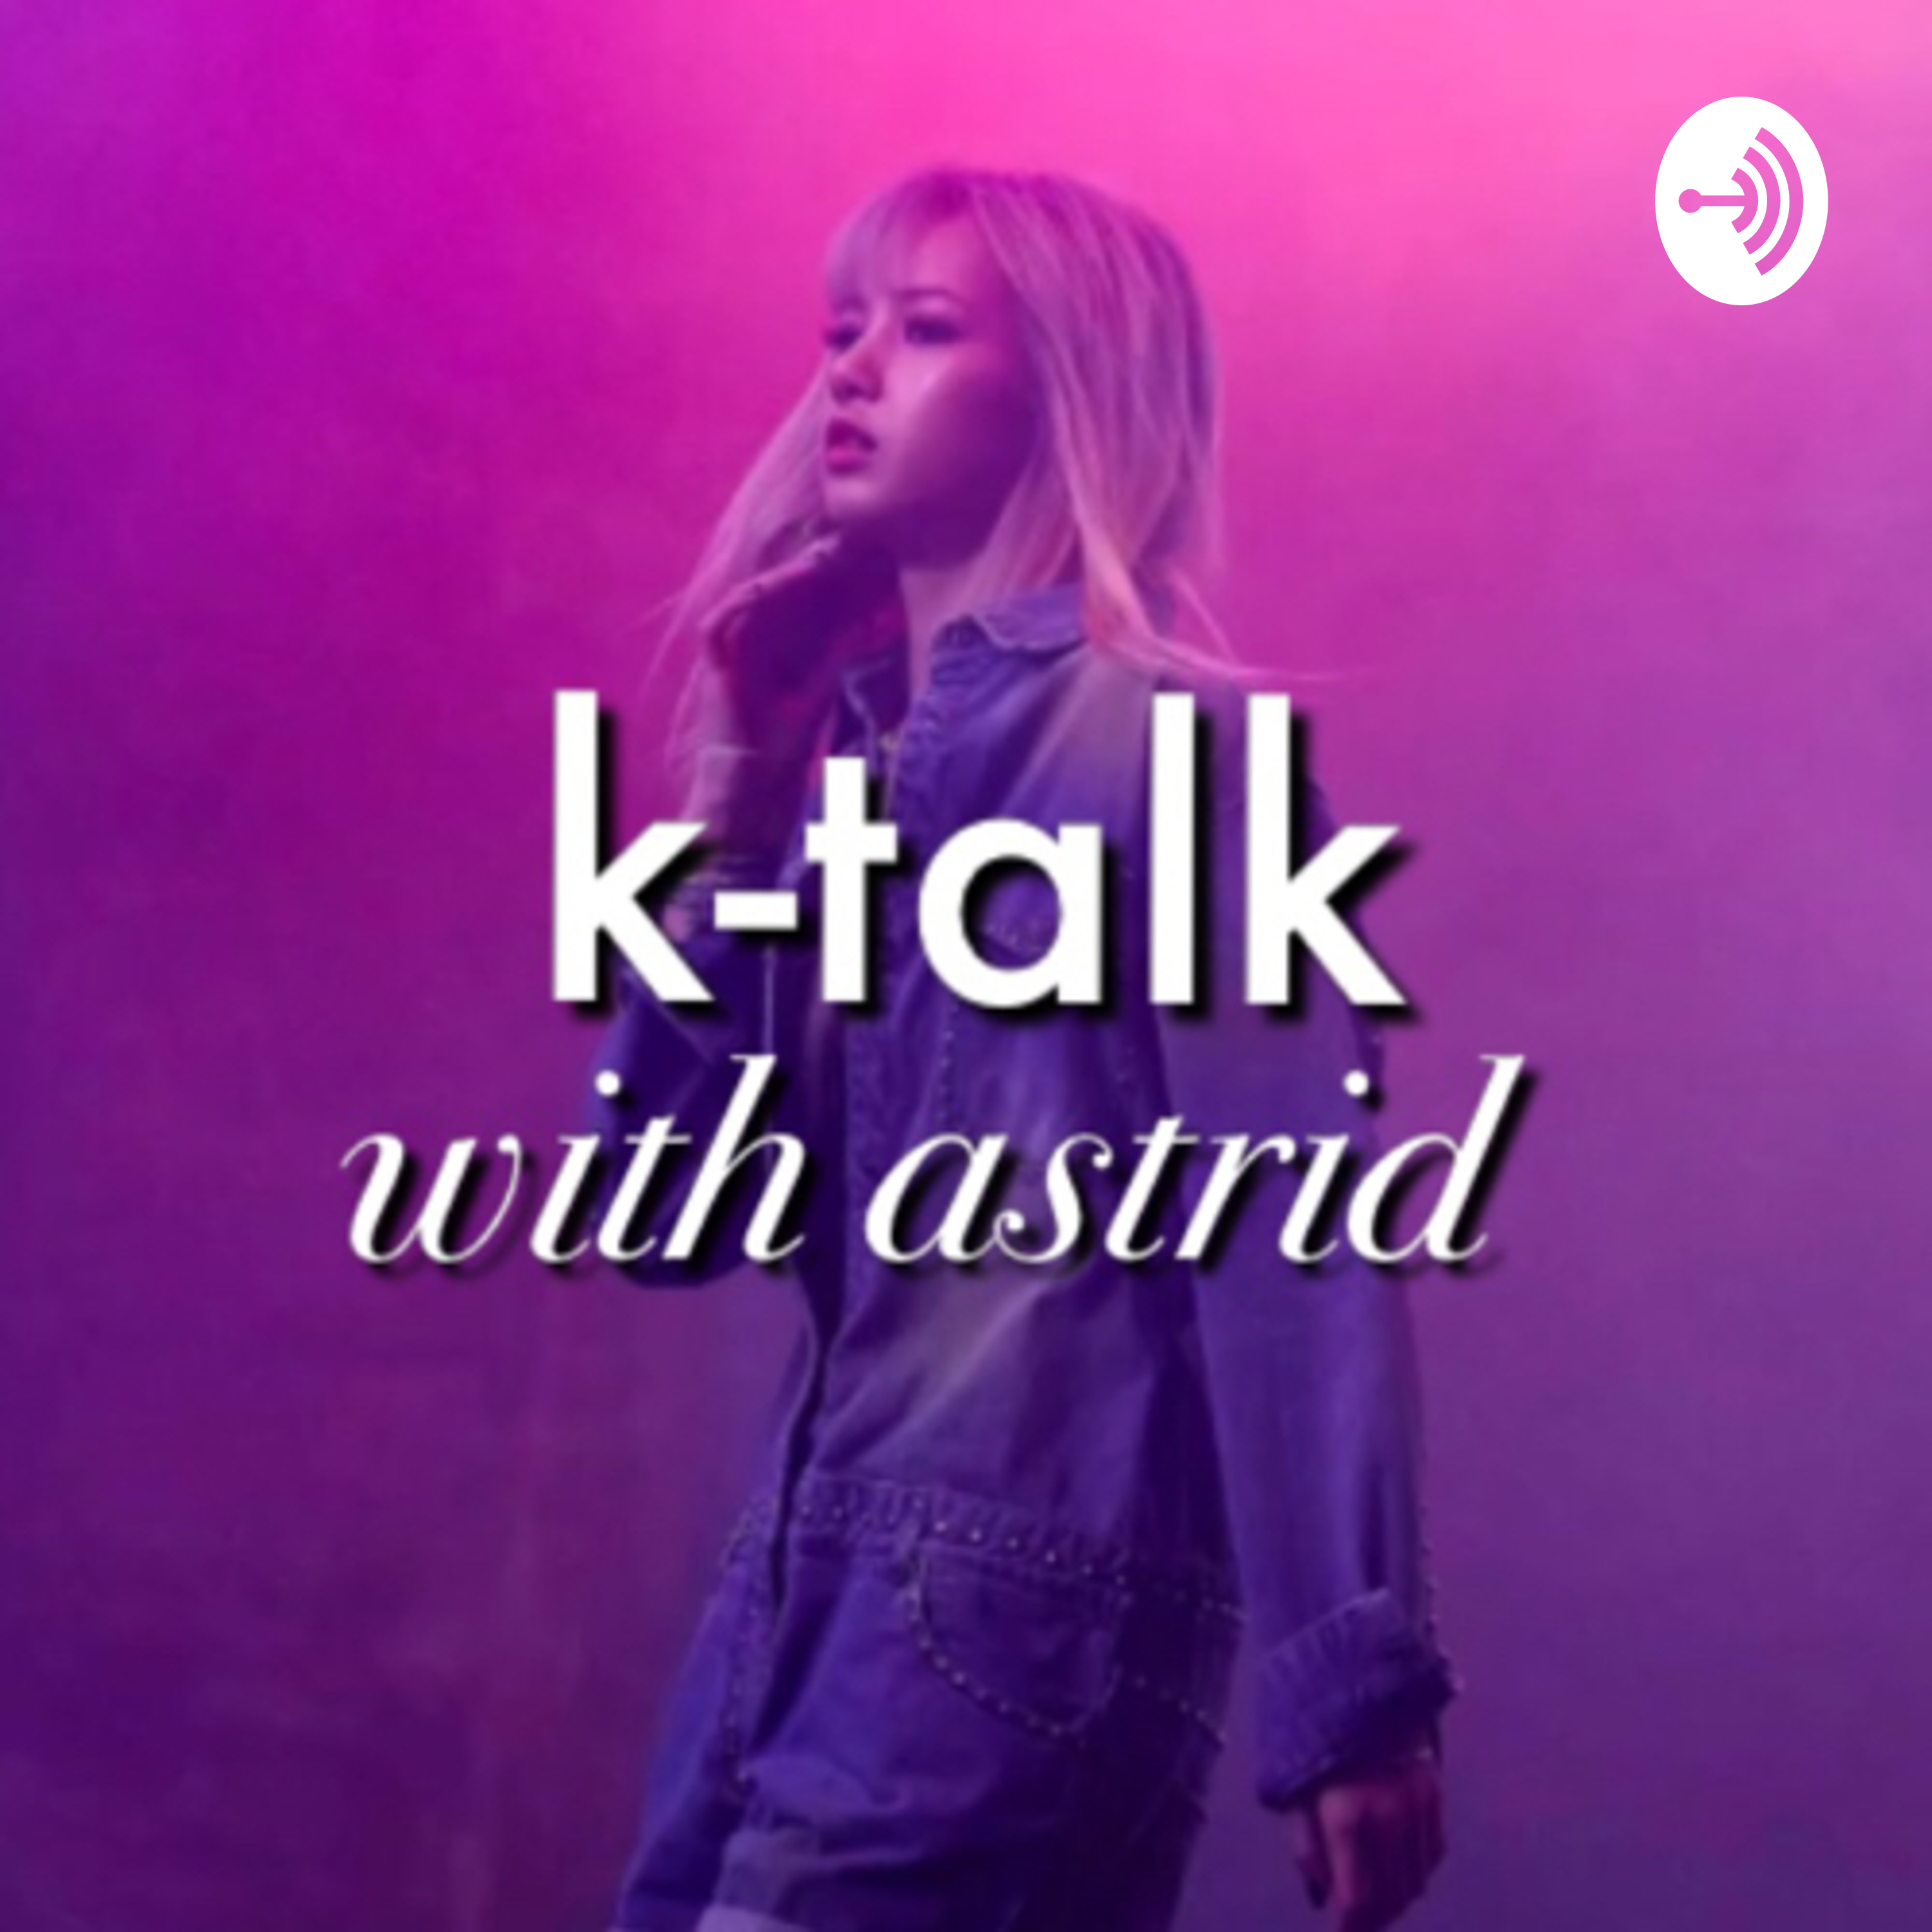 ✧k-talk with astrid✧ | Listen via Stitcher for Podcasts